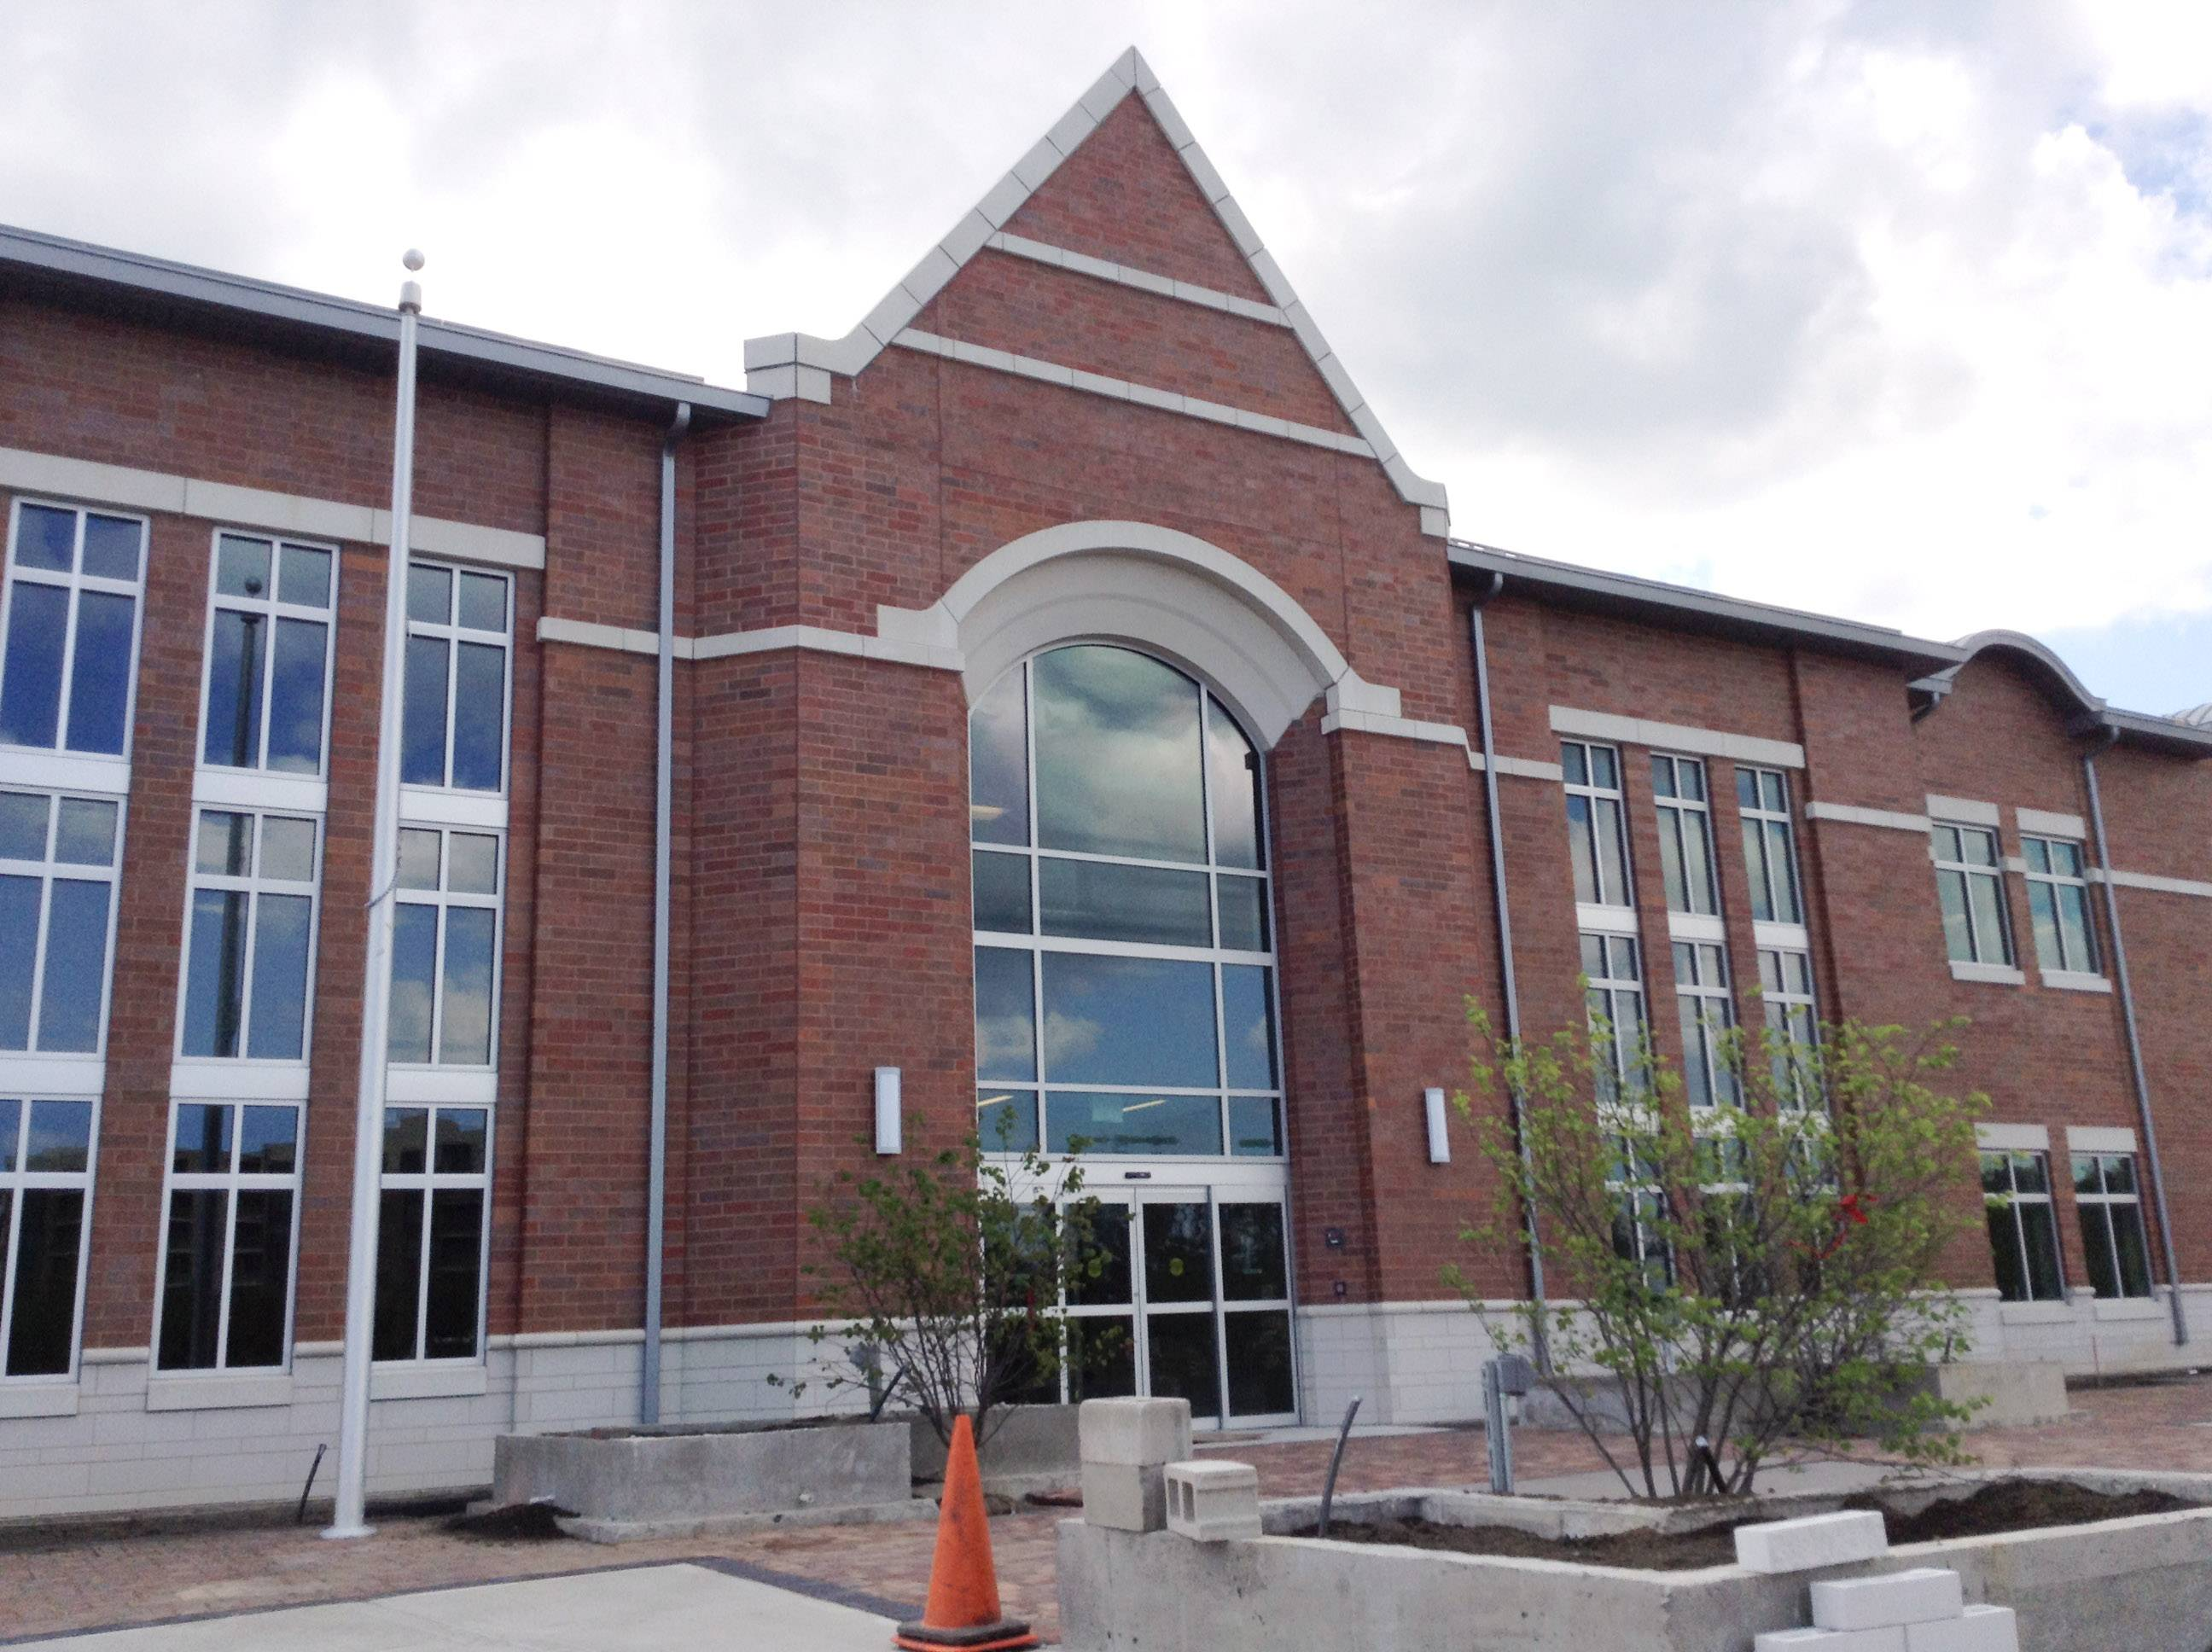 The opening of Mundelein's new village hall is delayed until June 23, officials said, because some elements of the construction aren't completed.